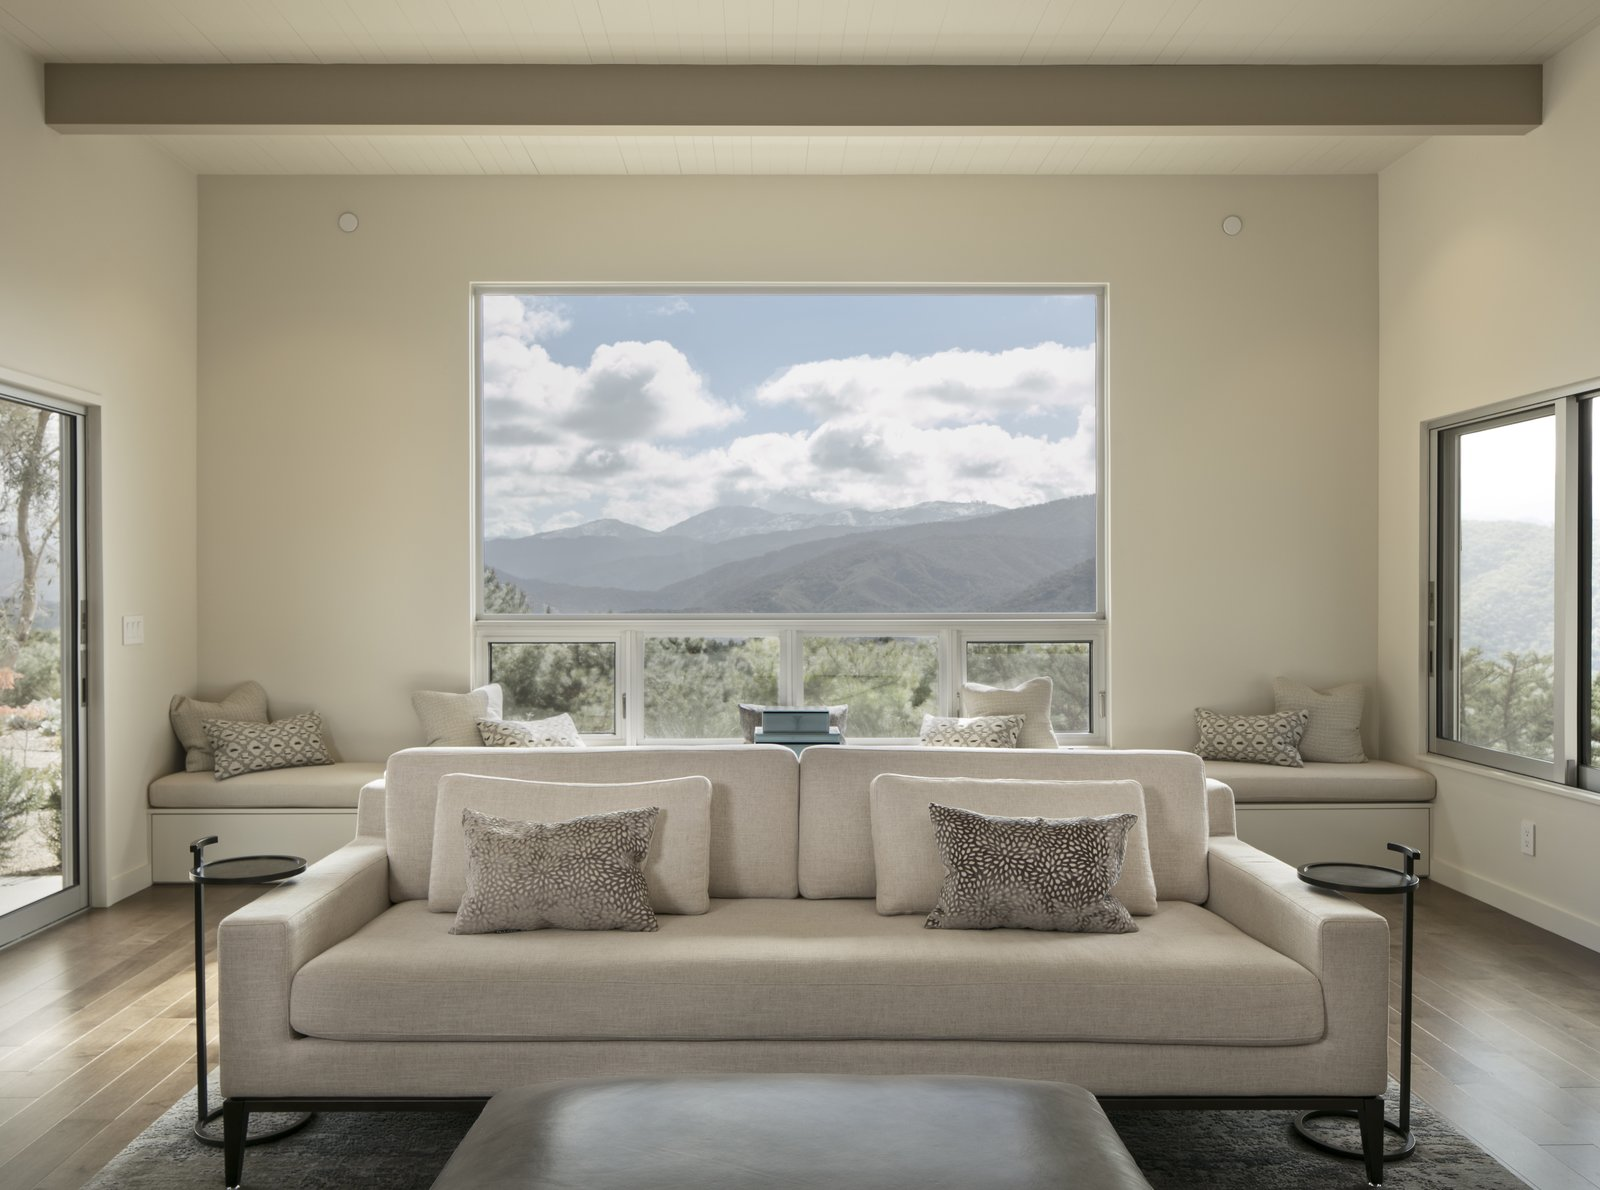 Windows on three sides of the living room take advantage of mountain and valley views.